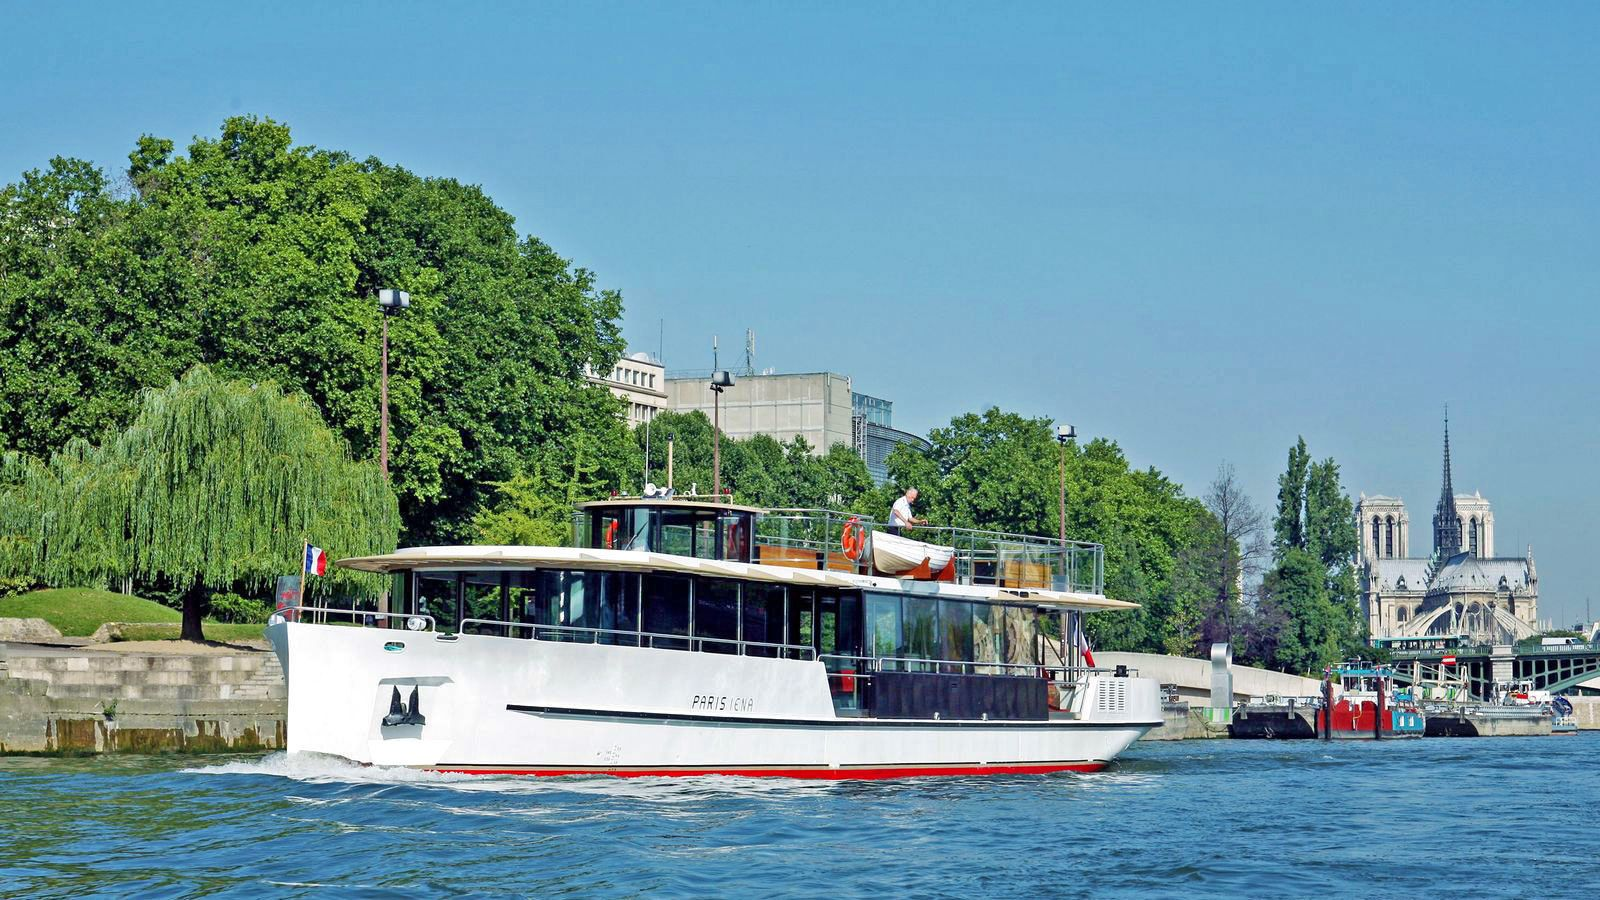 Cruise boat on the Champagne river in Paris